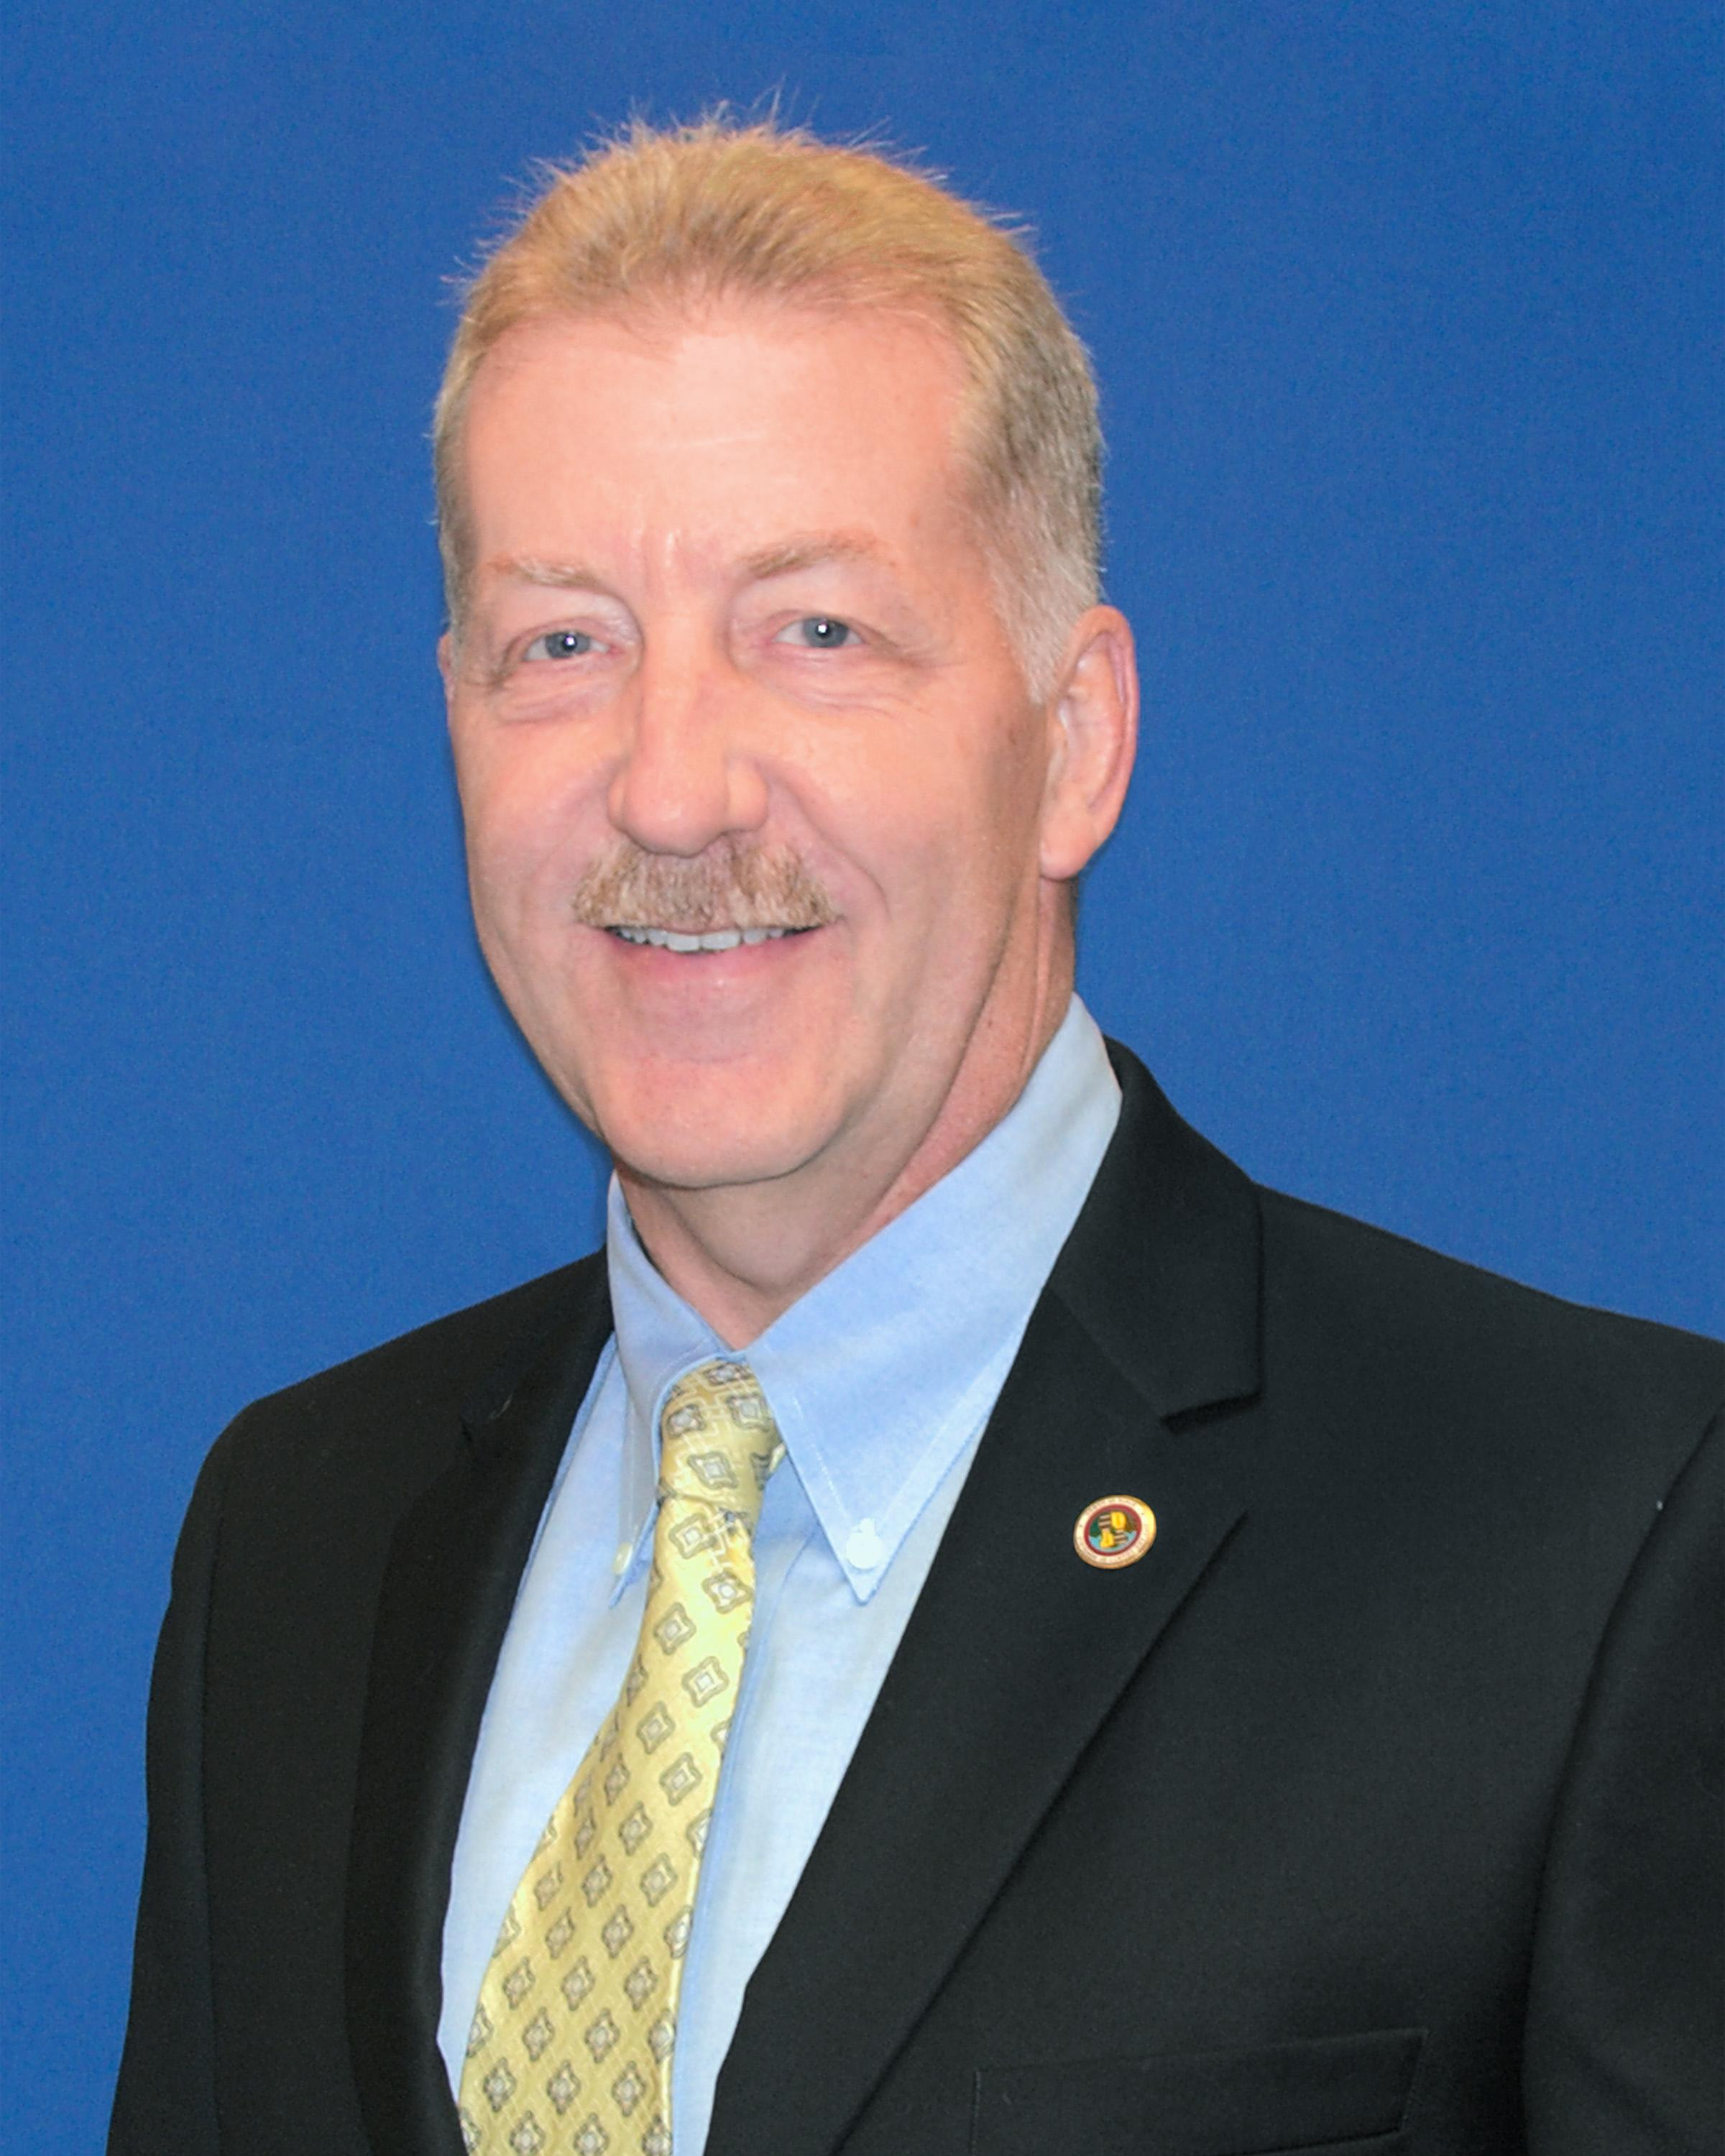 Mayor Carlisle's Official Photo